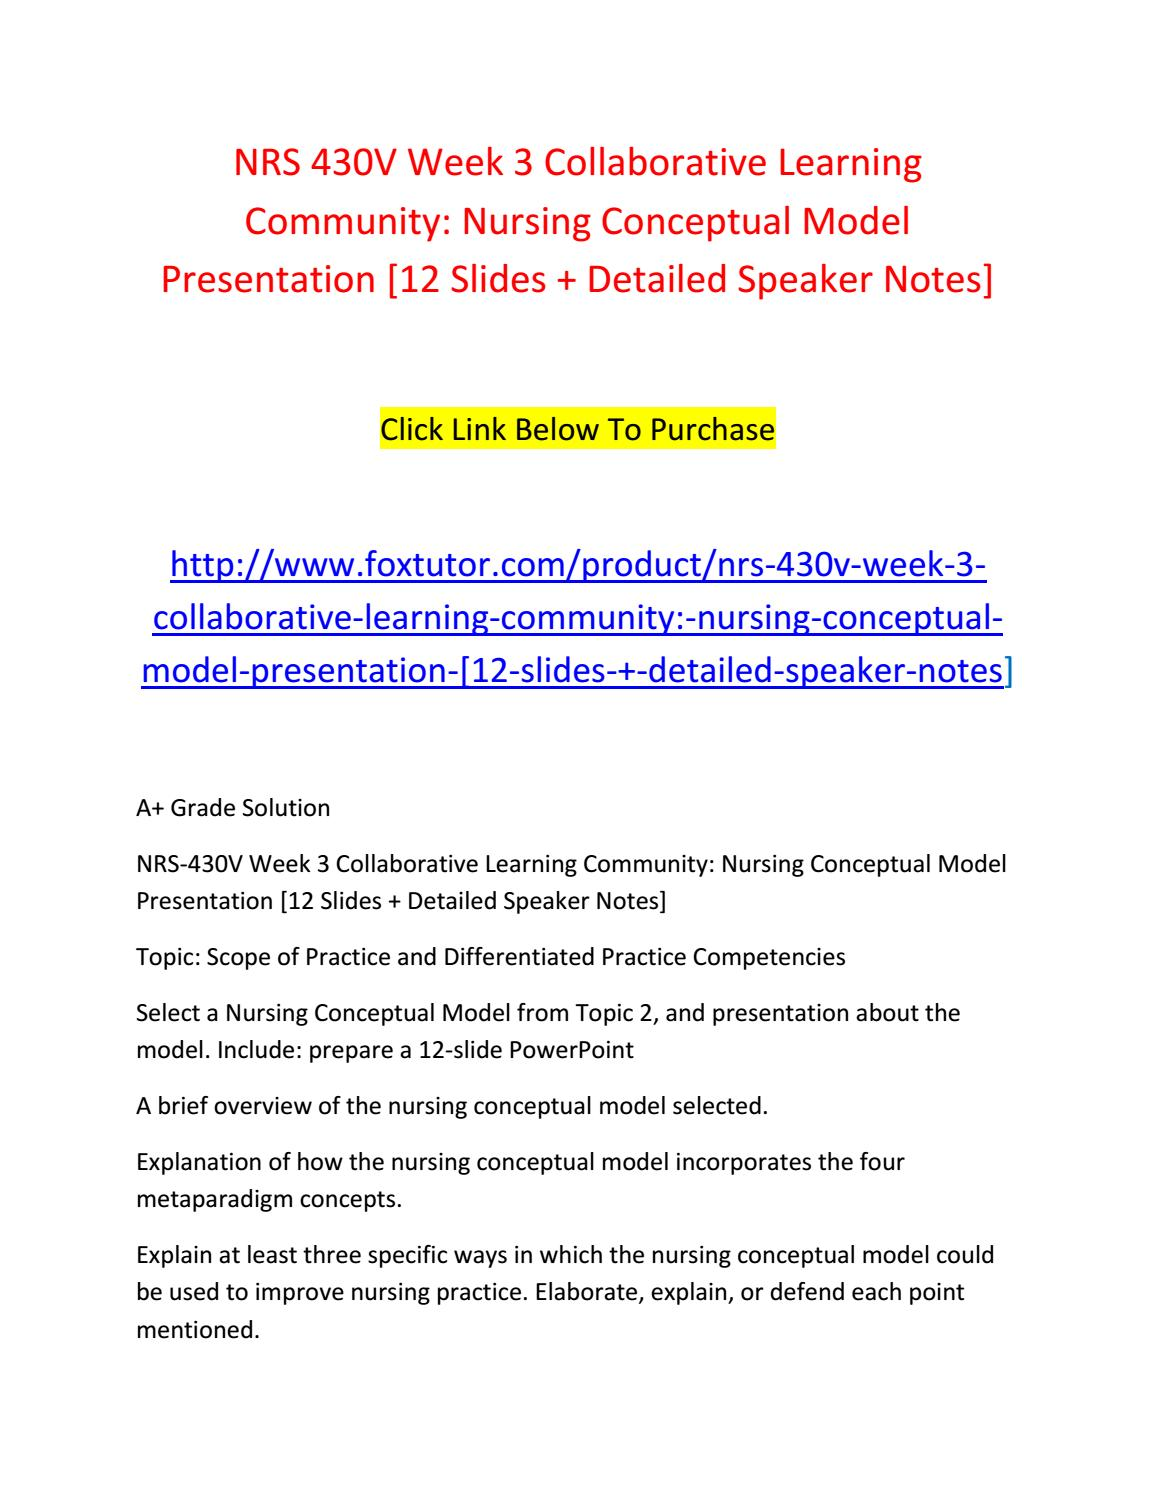 Collaborative Learning In Nursing Classroom ~ Nrs v week collaborative learning community nursing